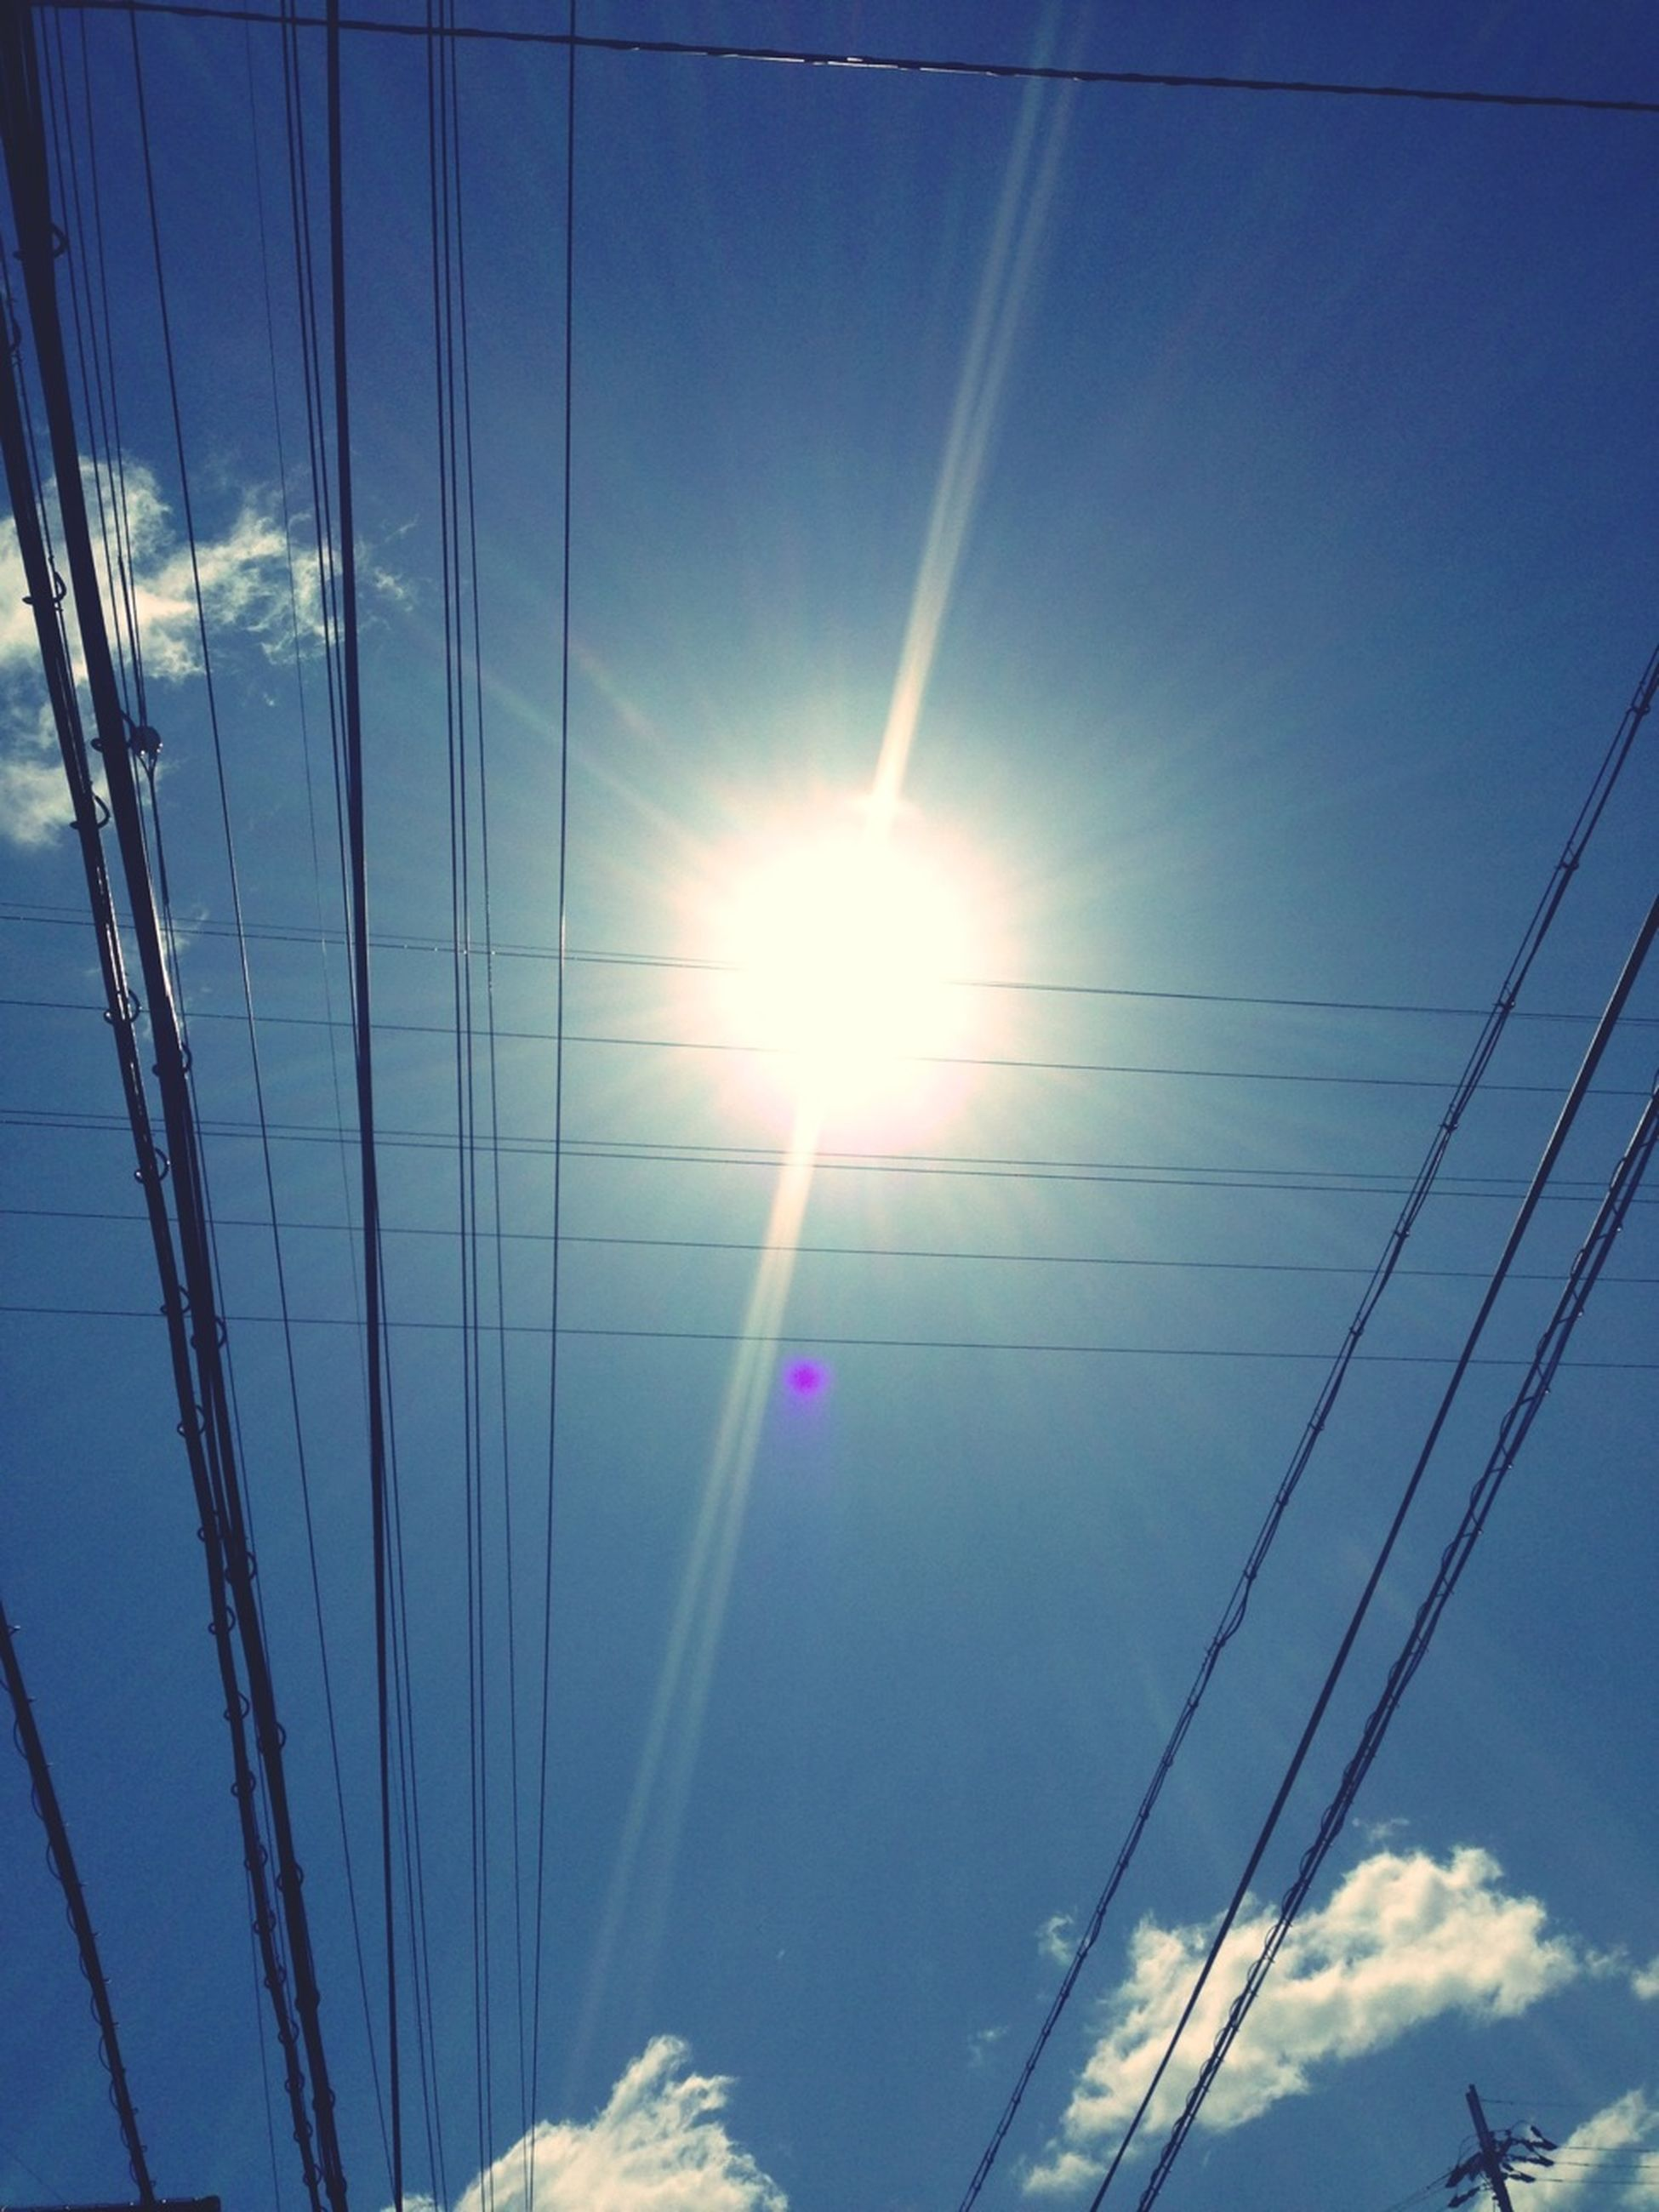 power line, low angle view, sun, blue, cable, connection, electricity, power supply, electricity pylon, sunbeam, sunlight, sky, lens flare, fuel and power generation, power cable, vapor trail, technology, day, bright, nature